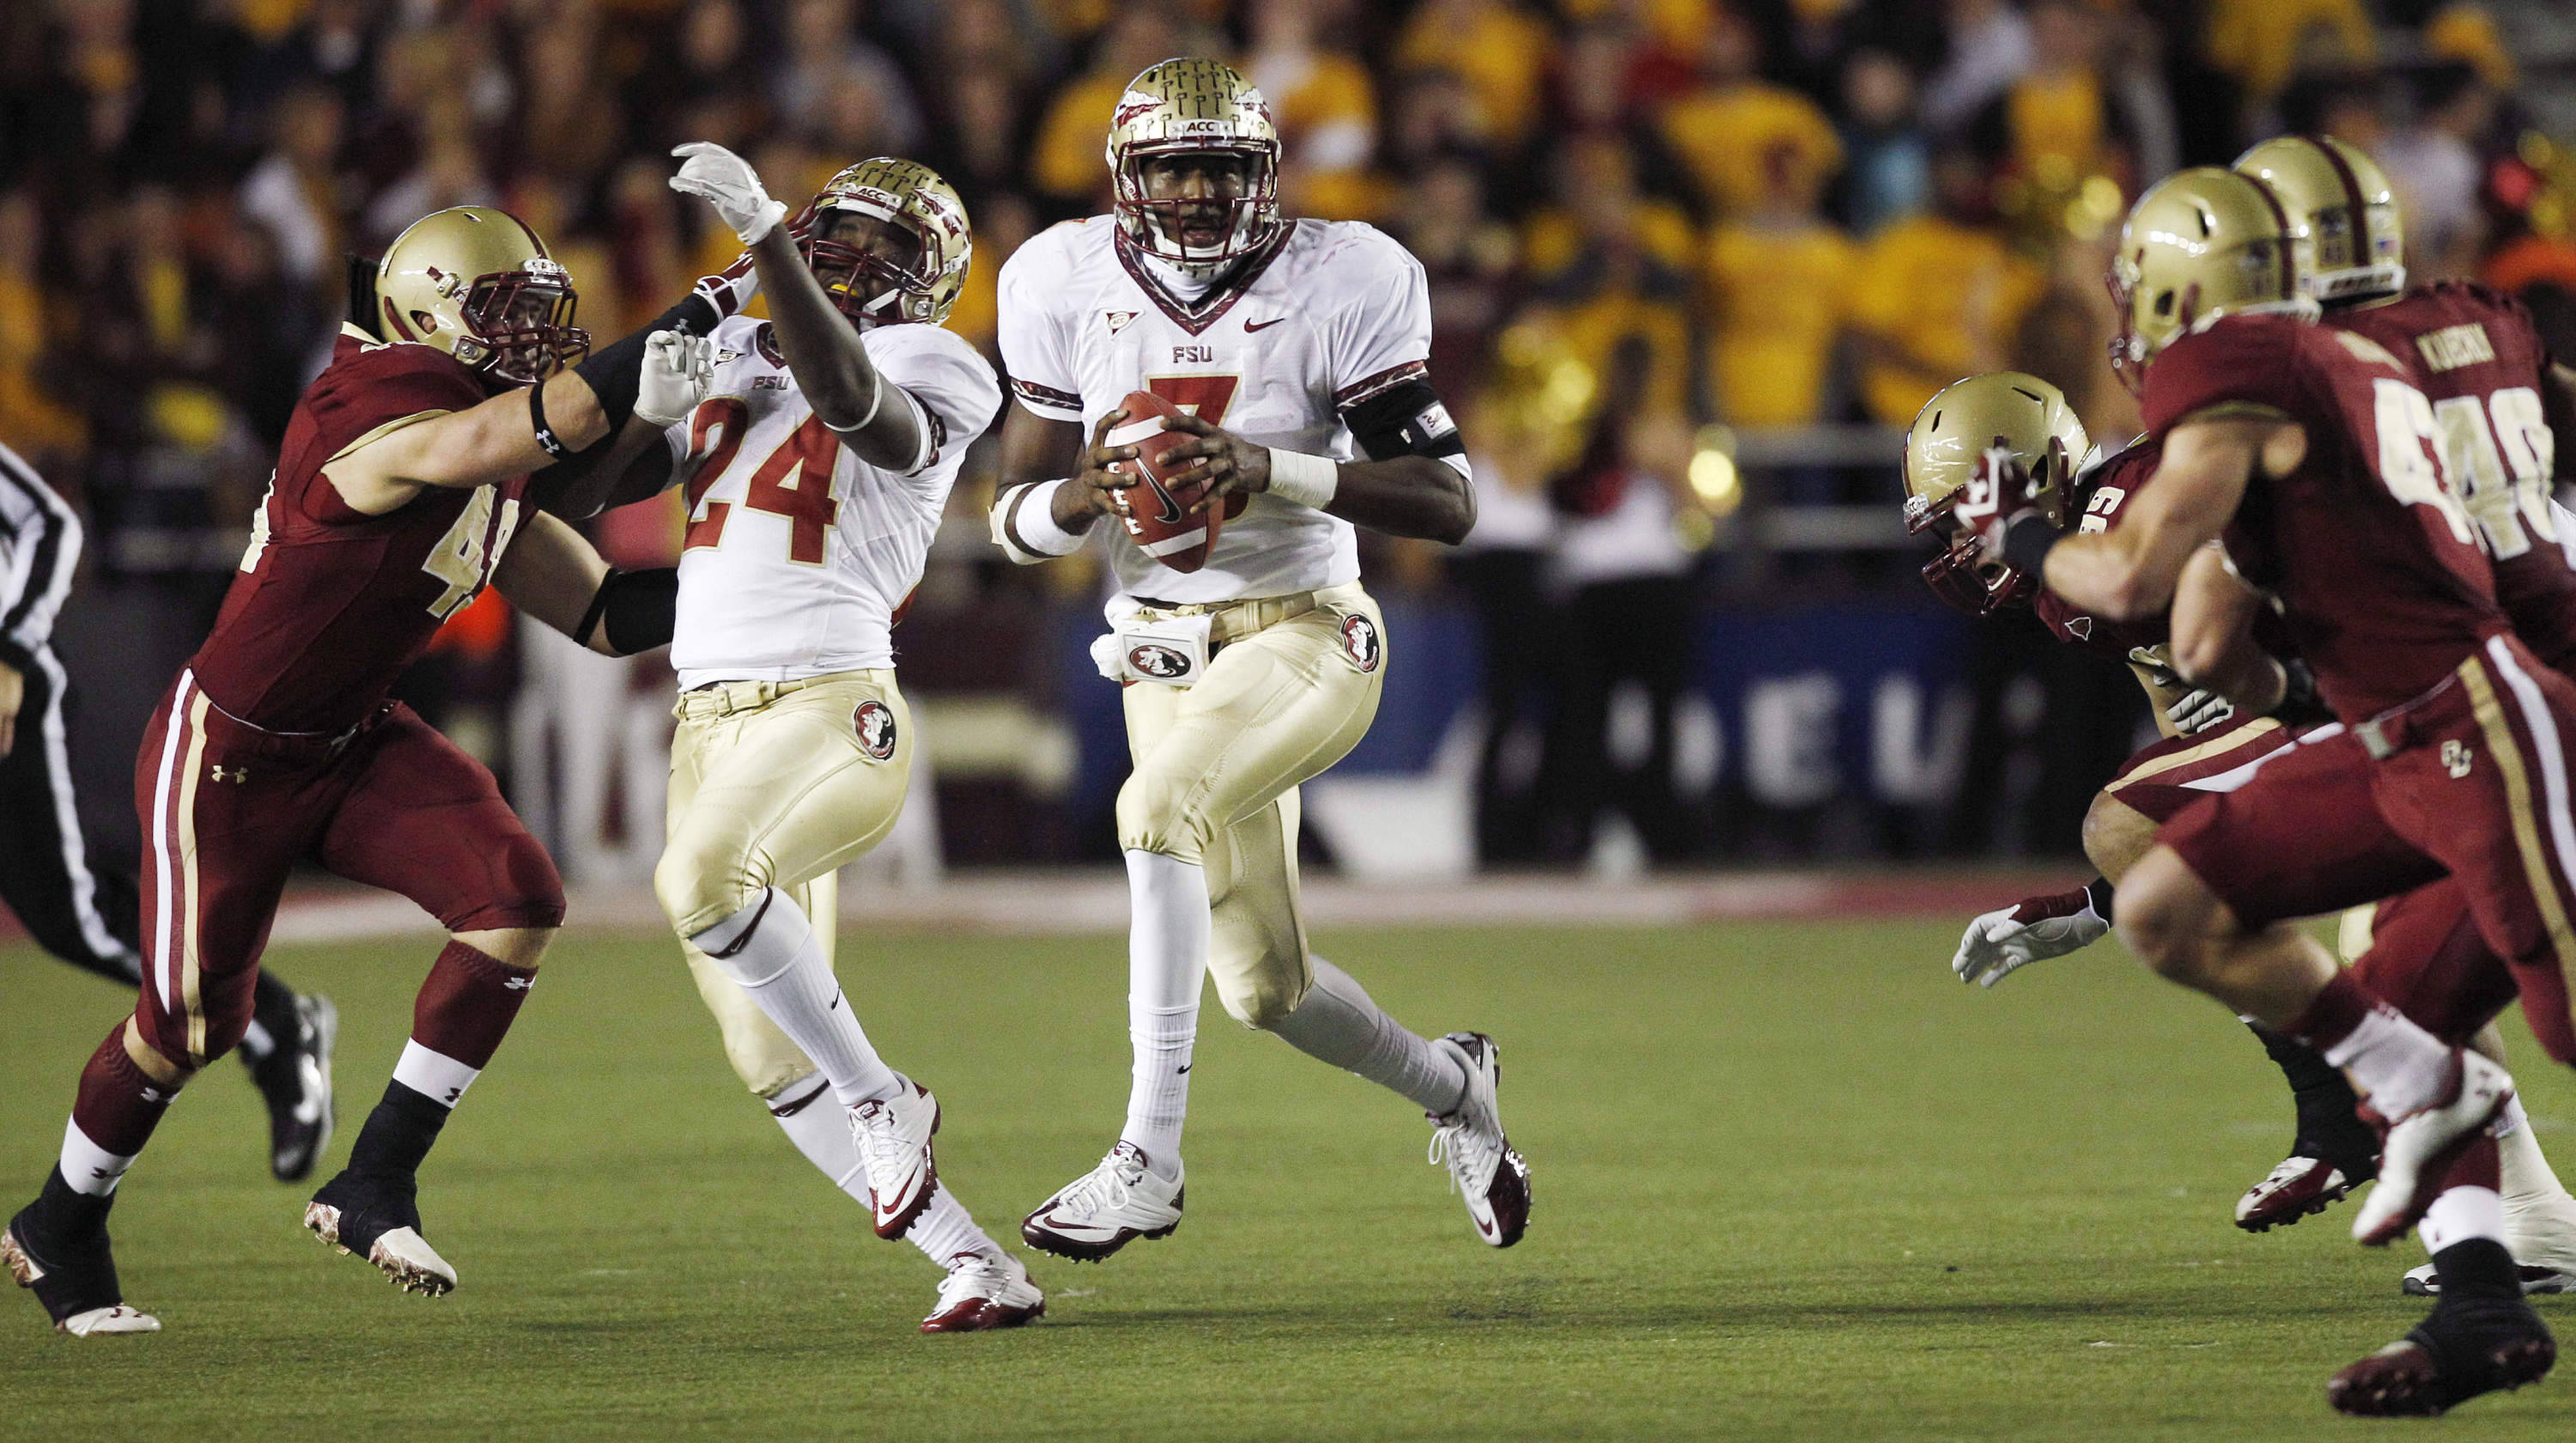 Florida State quarterback E.J. Manuel (3) scrambles through a hole in the Boston College defense for a gain during the first half. (AP Photo/Charles Krupa)